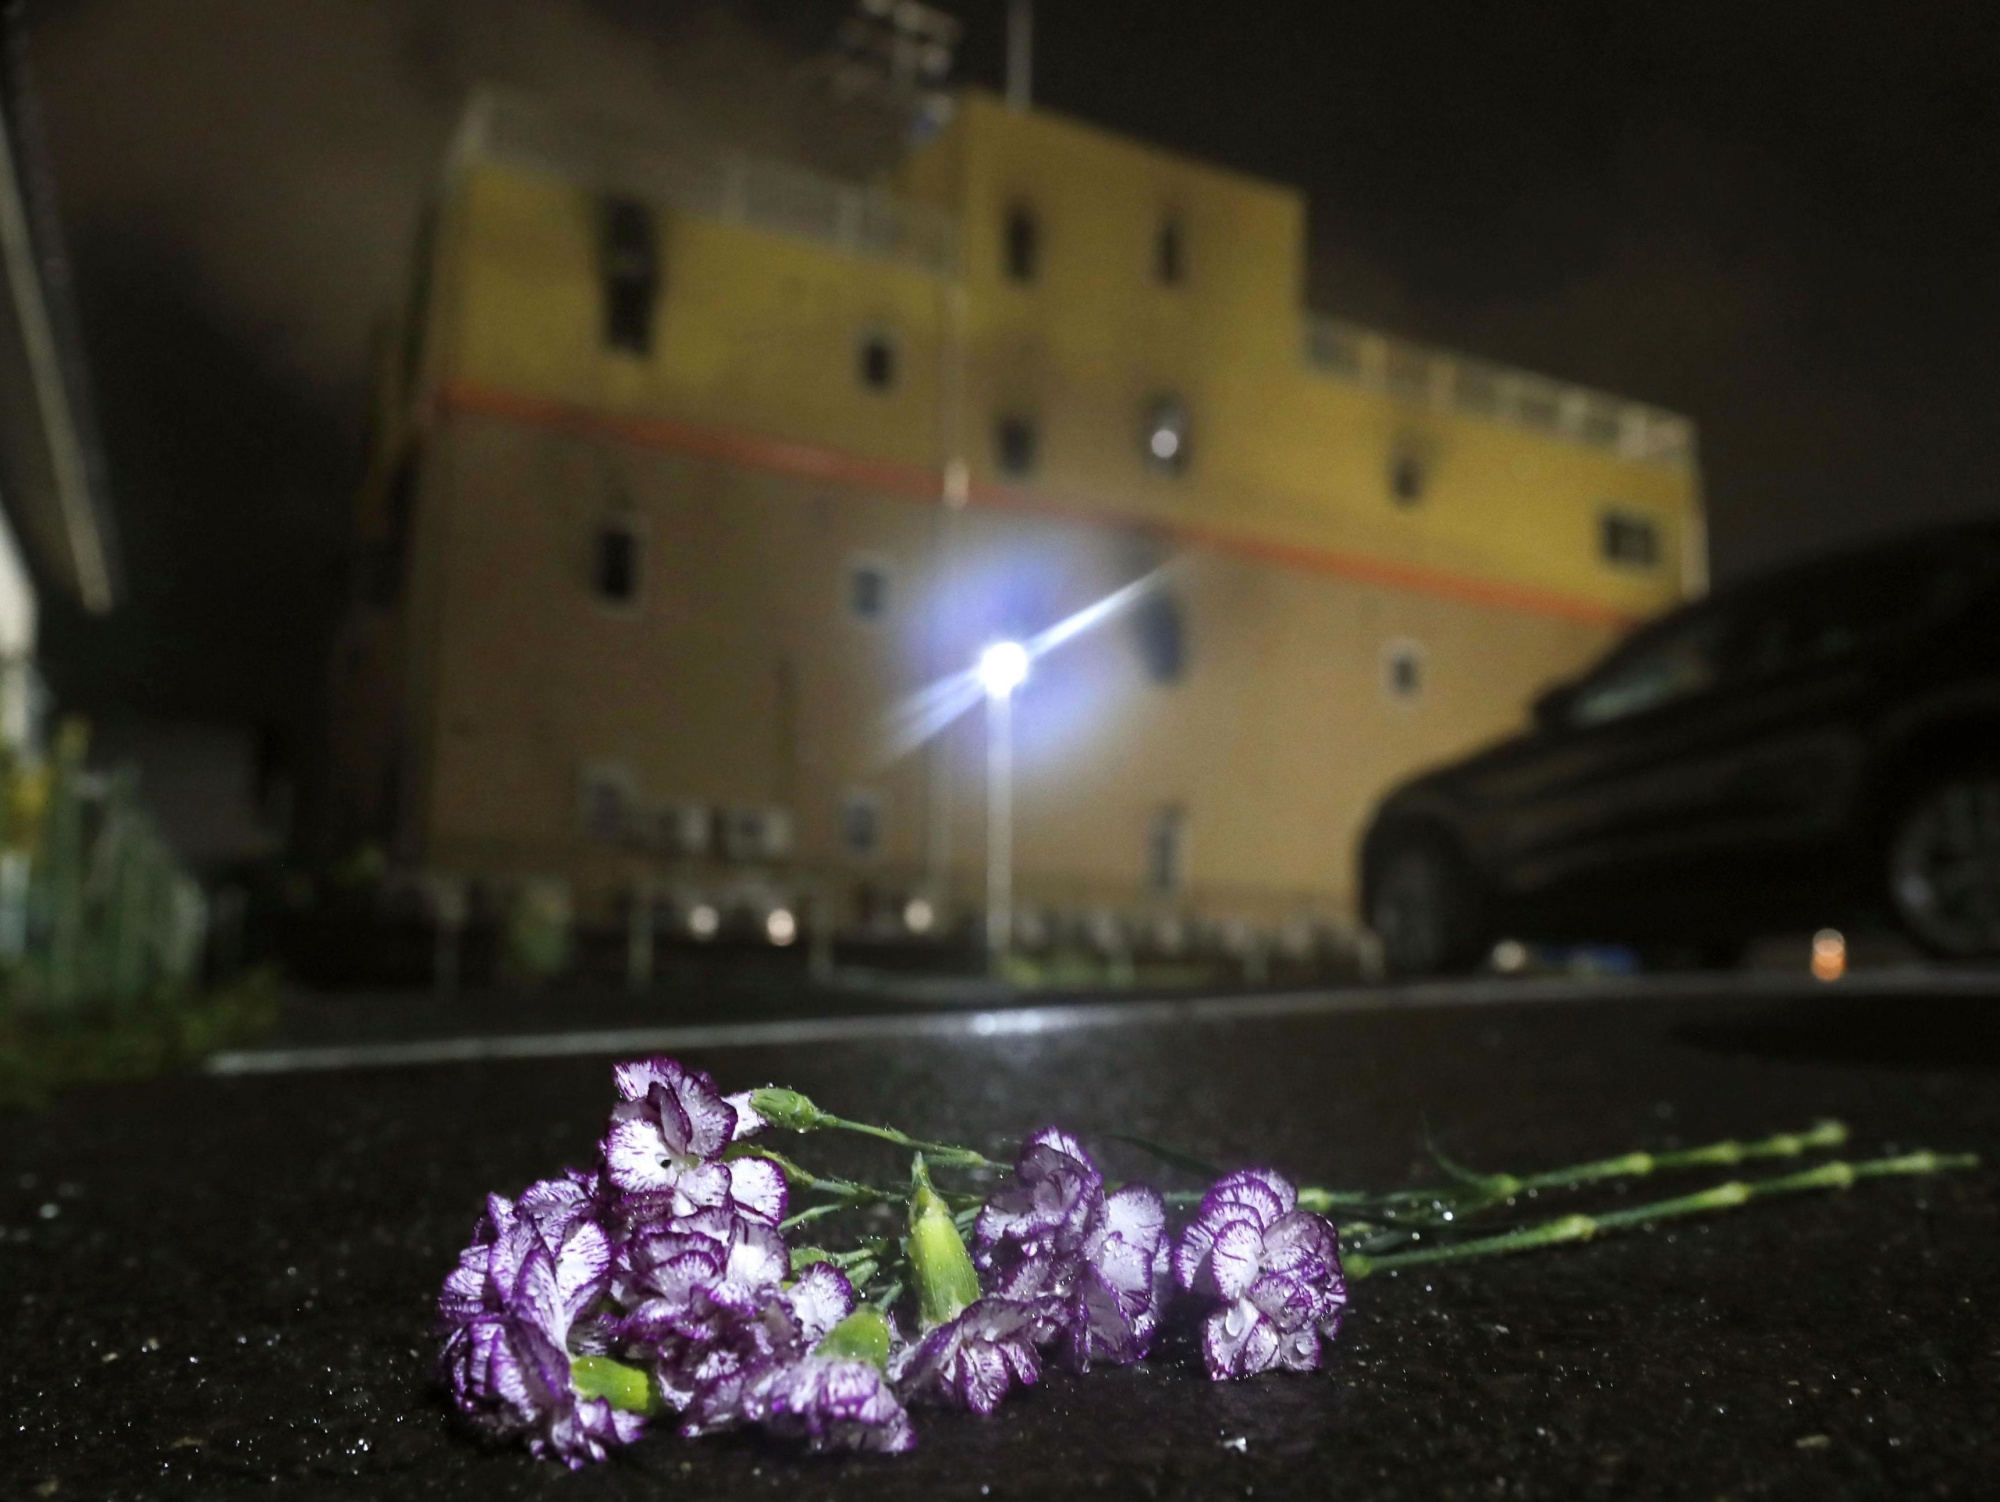 Flowers are laid in front of the Kyoto Animation Co. studio building in Kyoto's Fushimi Ward on Thursday after a suspected arson gutted the structure and killed at least 33 people and injured dozens of others.   KYODO